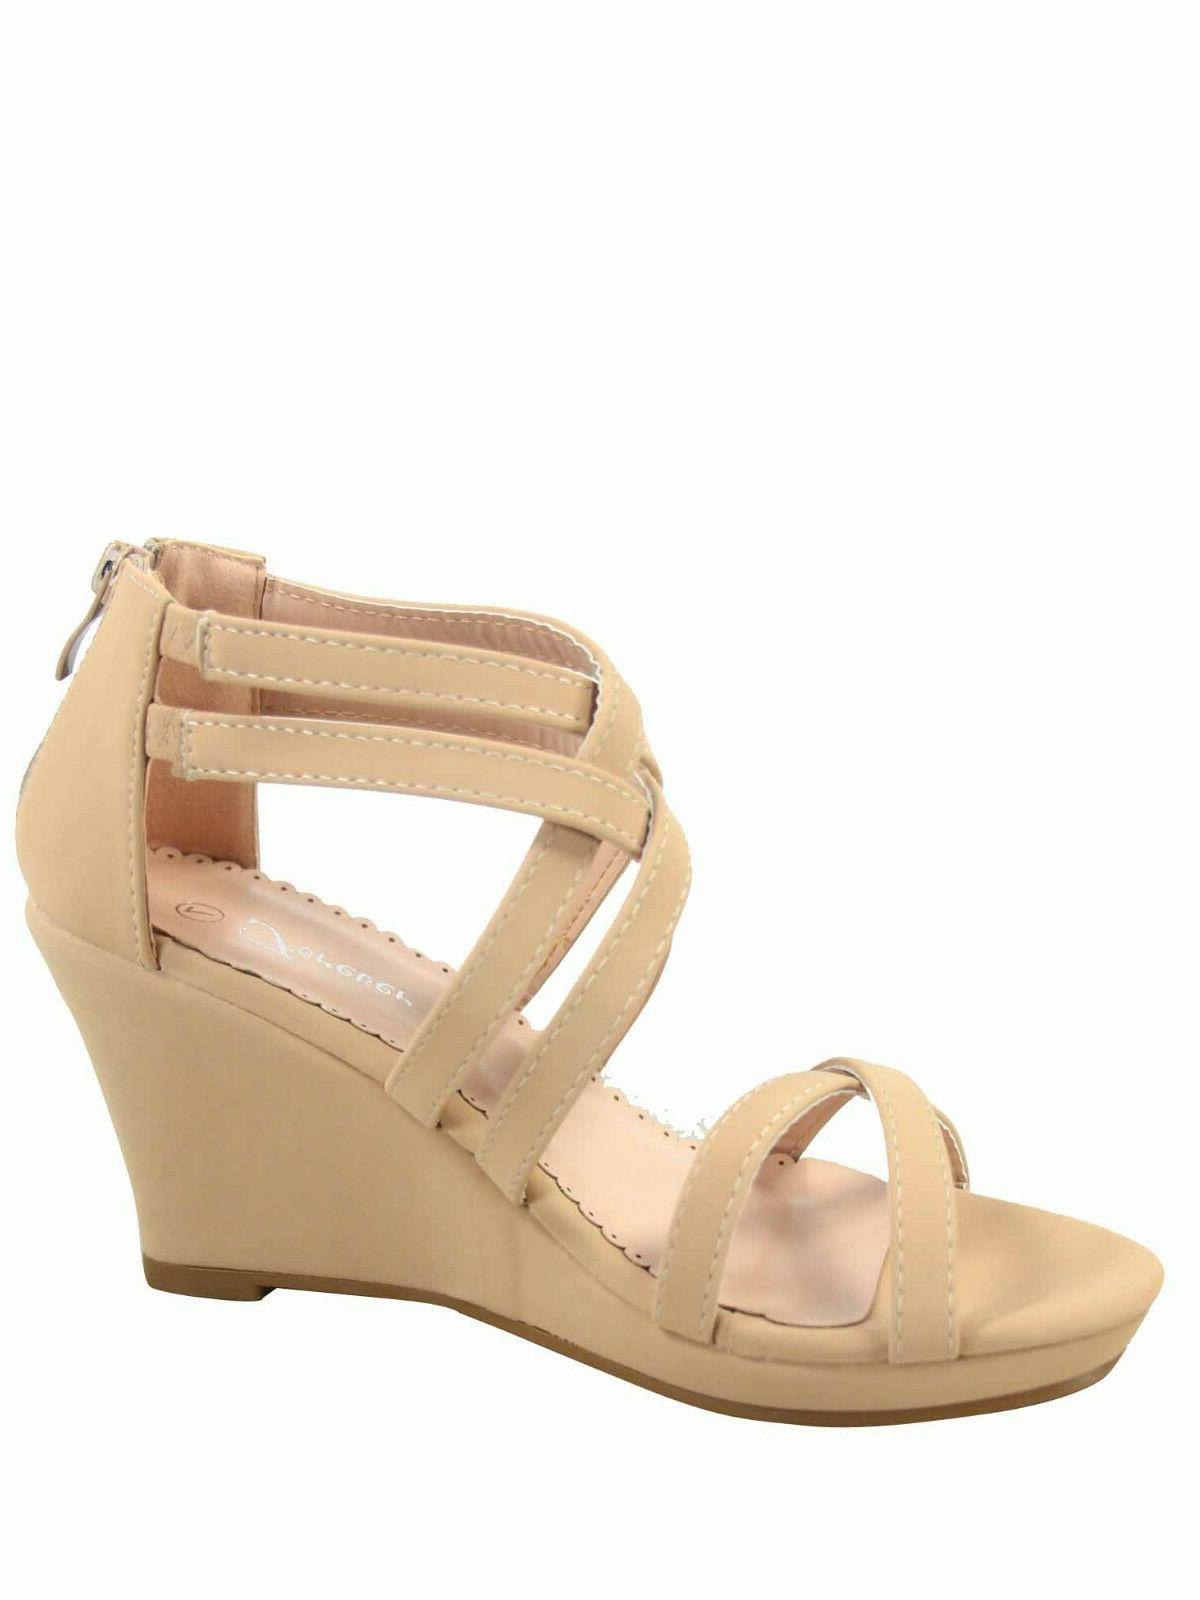 Women's Strap Wedge 10